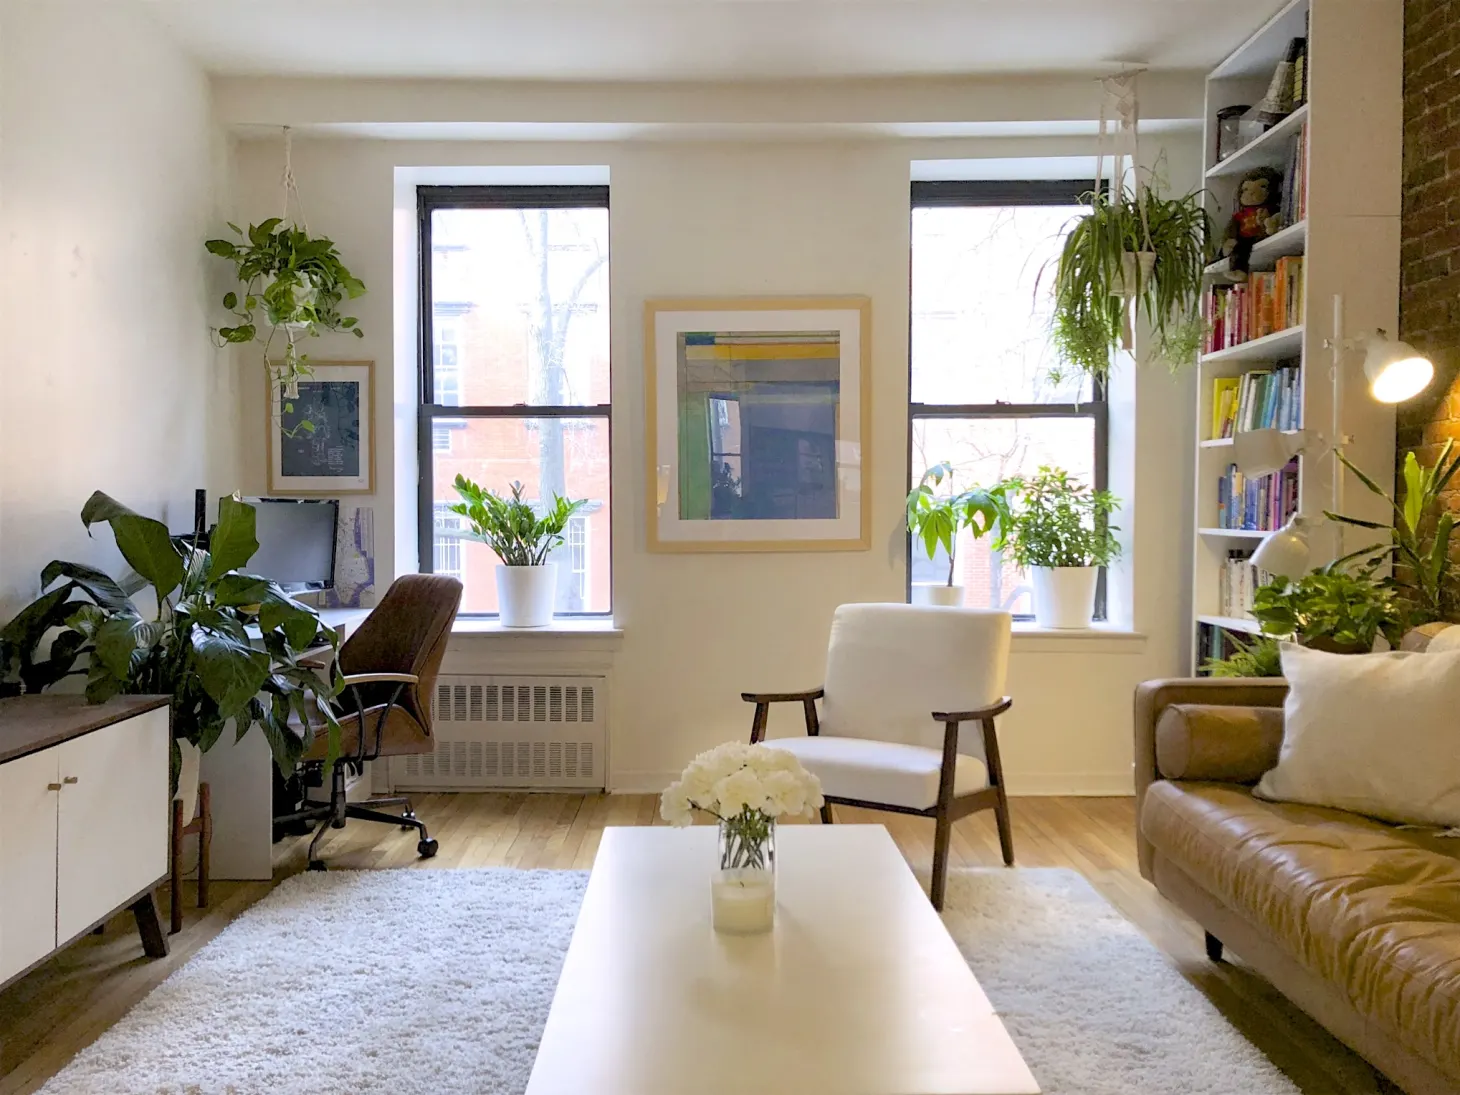 A Small Nyc Apartment Has The Cutest Simple Plant Display Above The Bed Tiny Living Rooms Desk In Living Room Nyc Apartment #small #living #room #desk #ideas